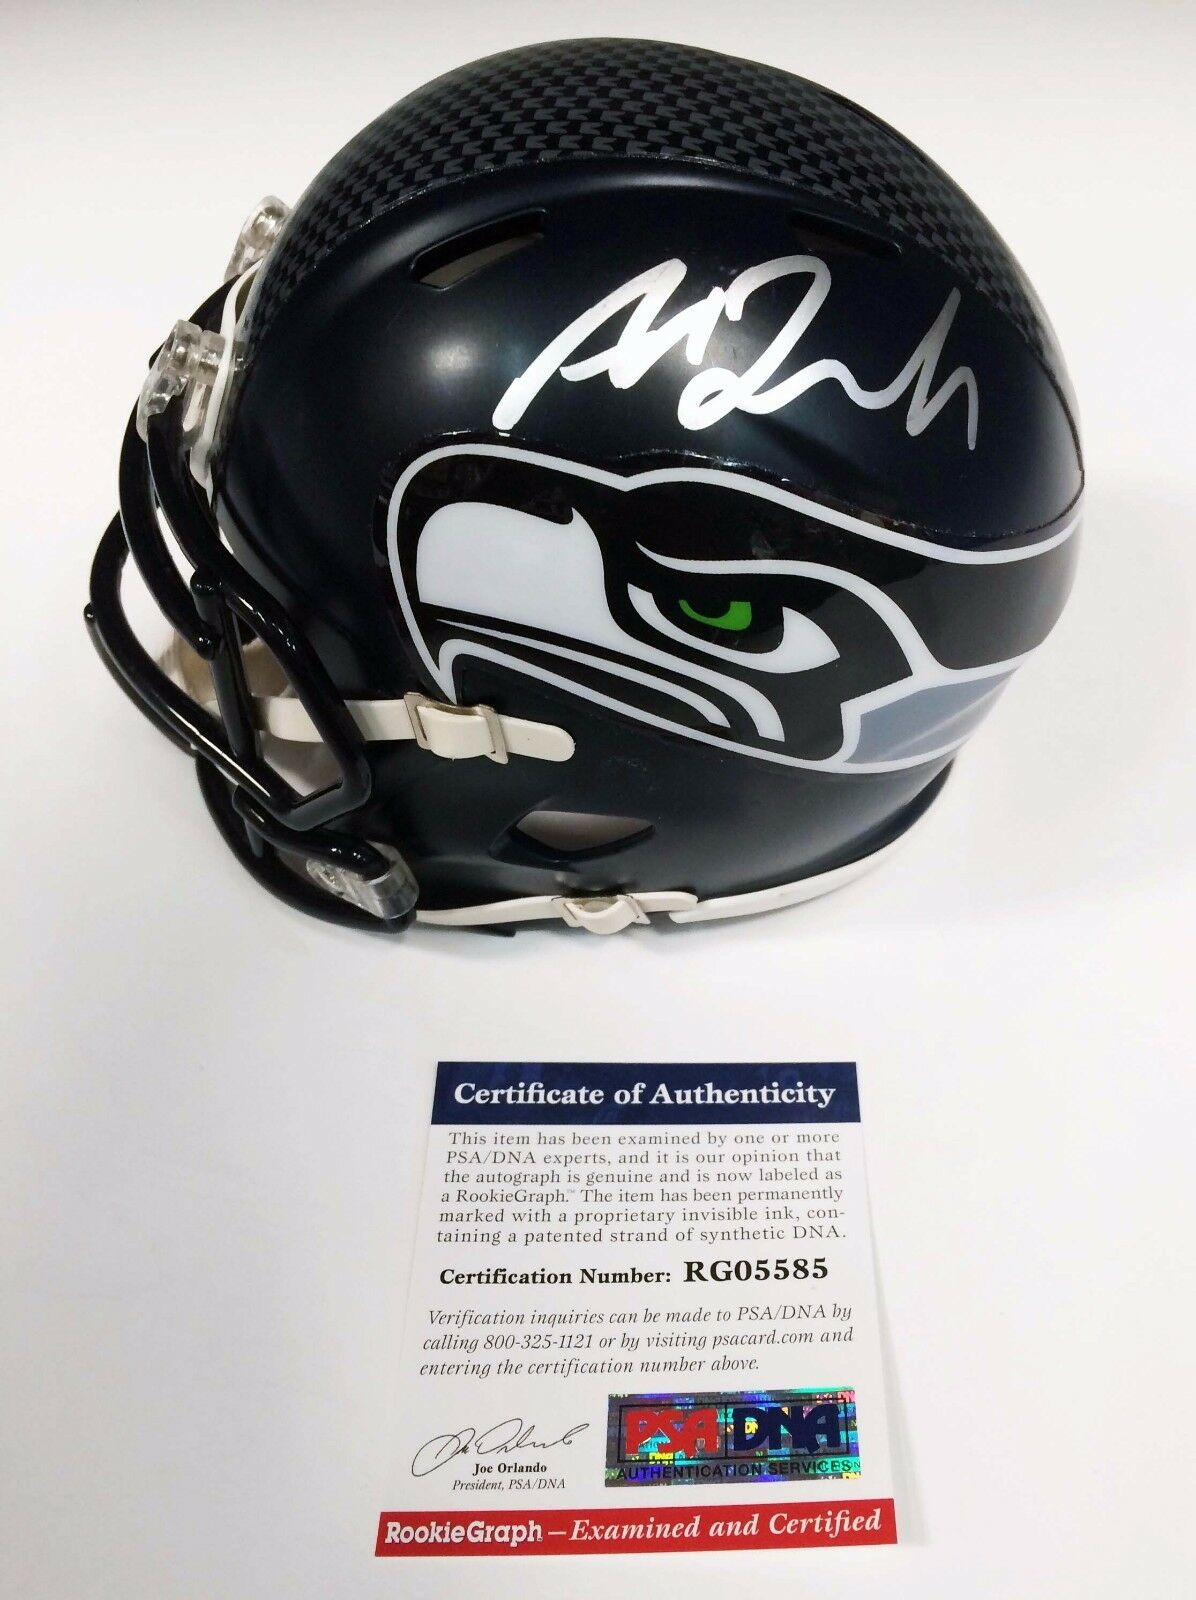 Seattle Seahawks Amara Darboh Signed Riddell Mini Helmet PSA/DNA RG05585